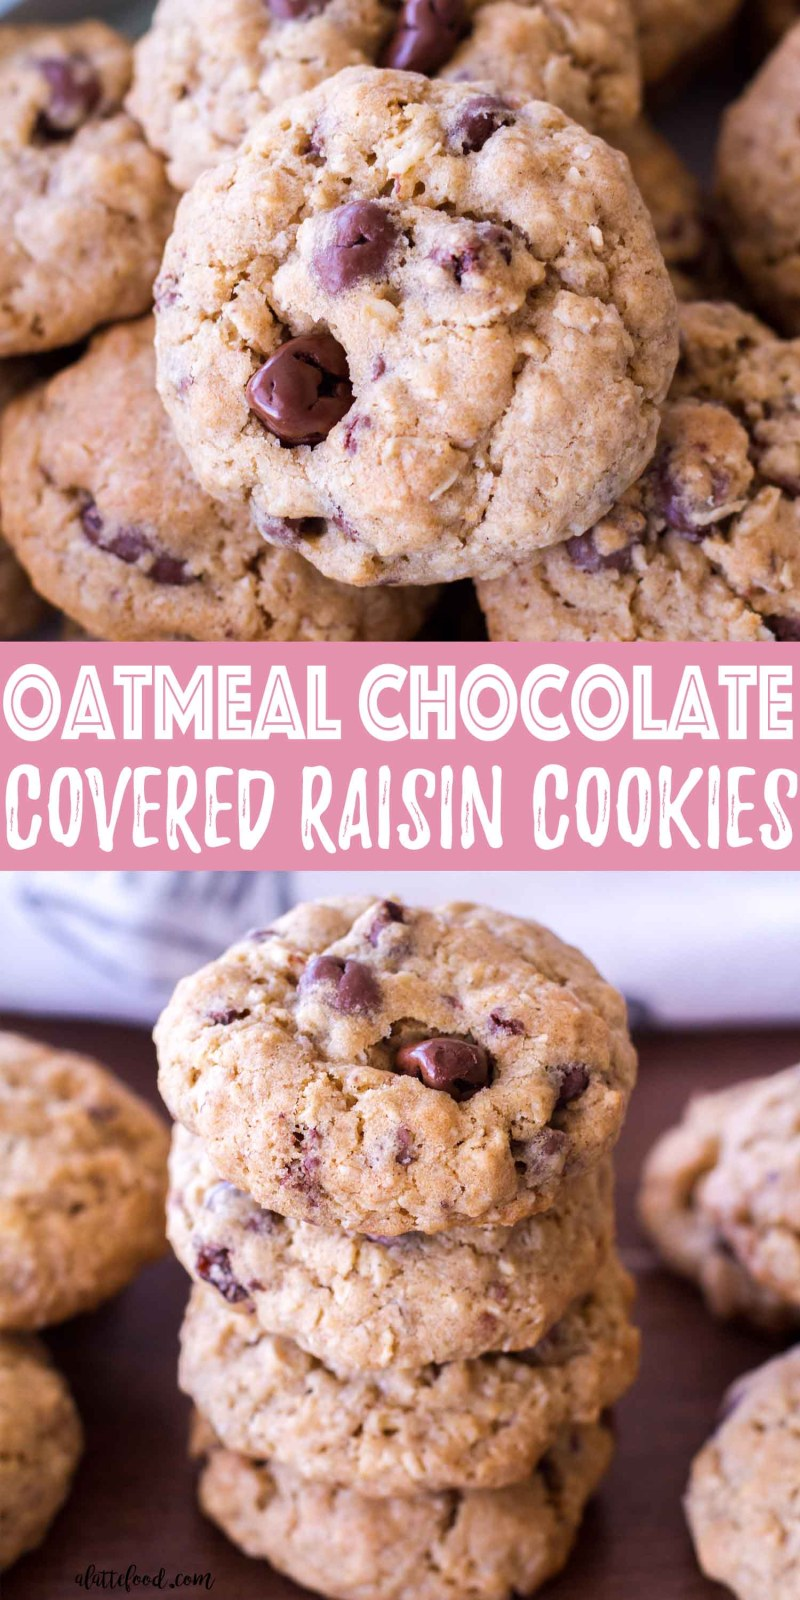 oatmeal chocolate covered raisin cookies collage